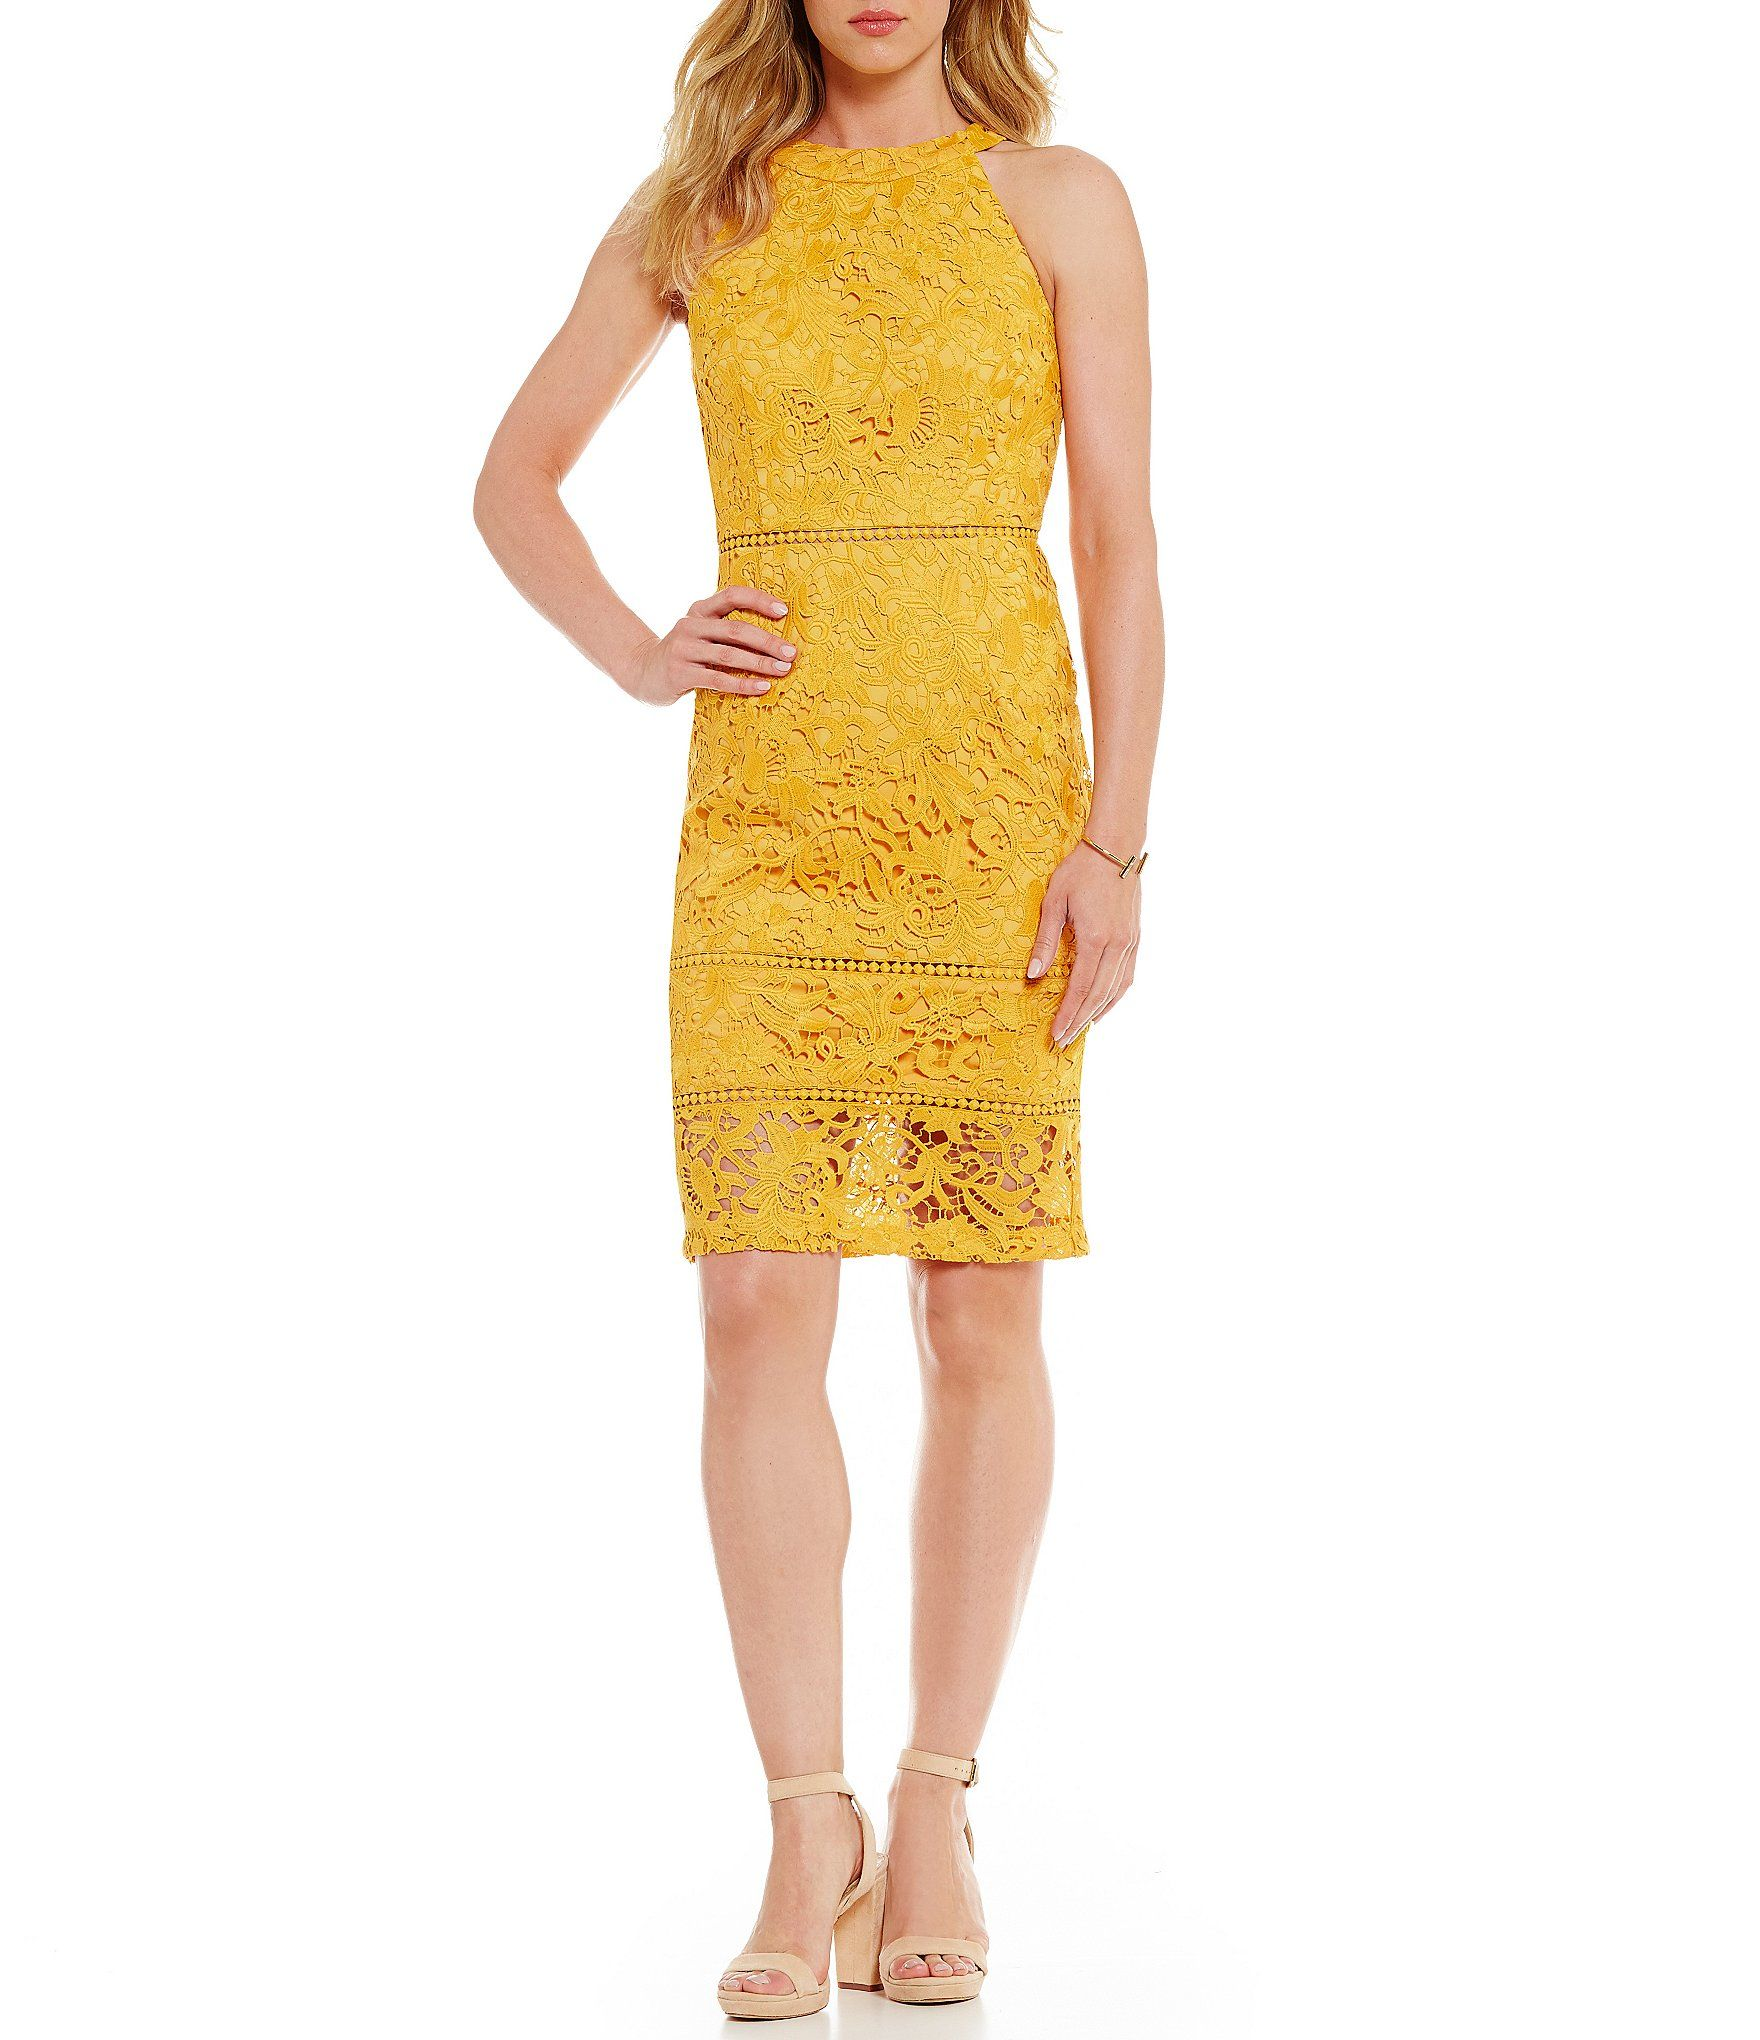 66e0db8a8b Shop for Antonio Melani Haley Chemical Lace Dress at Dillards.com. Visit  Dillards.com to find clothing